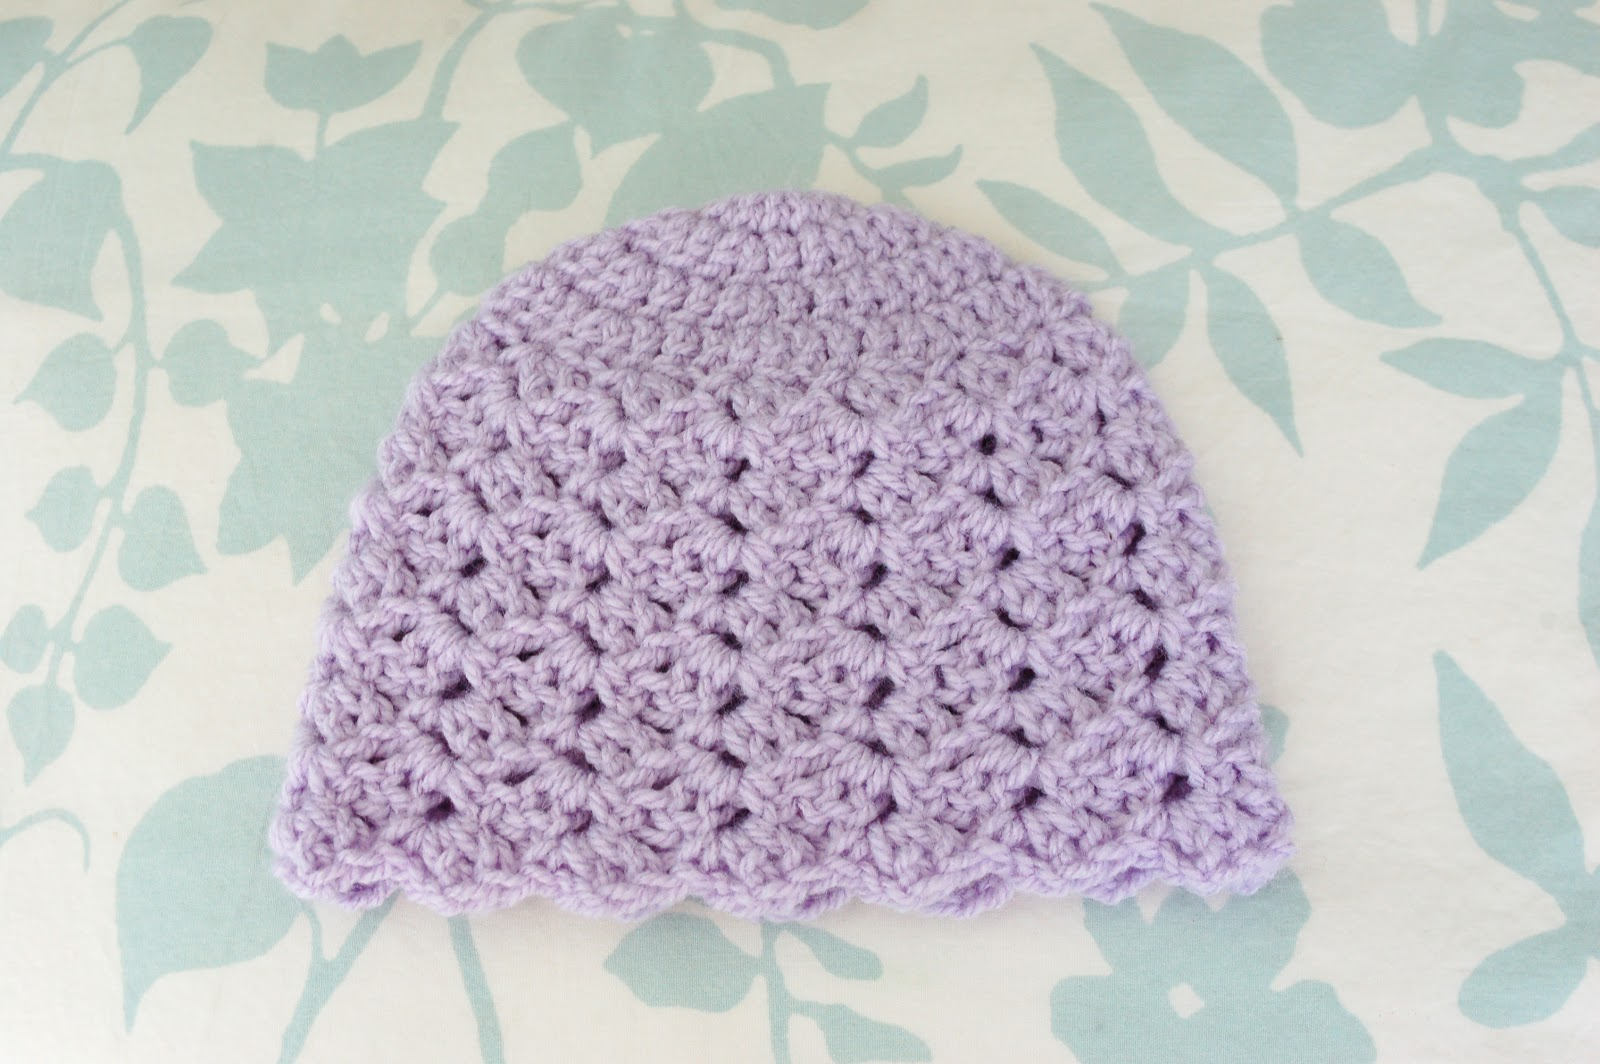 Crochet Stitches Baby Hats : ... ch chain dc double crochet sc single crochet sl st slip stitch